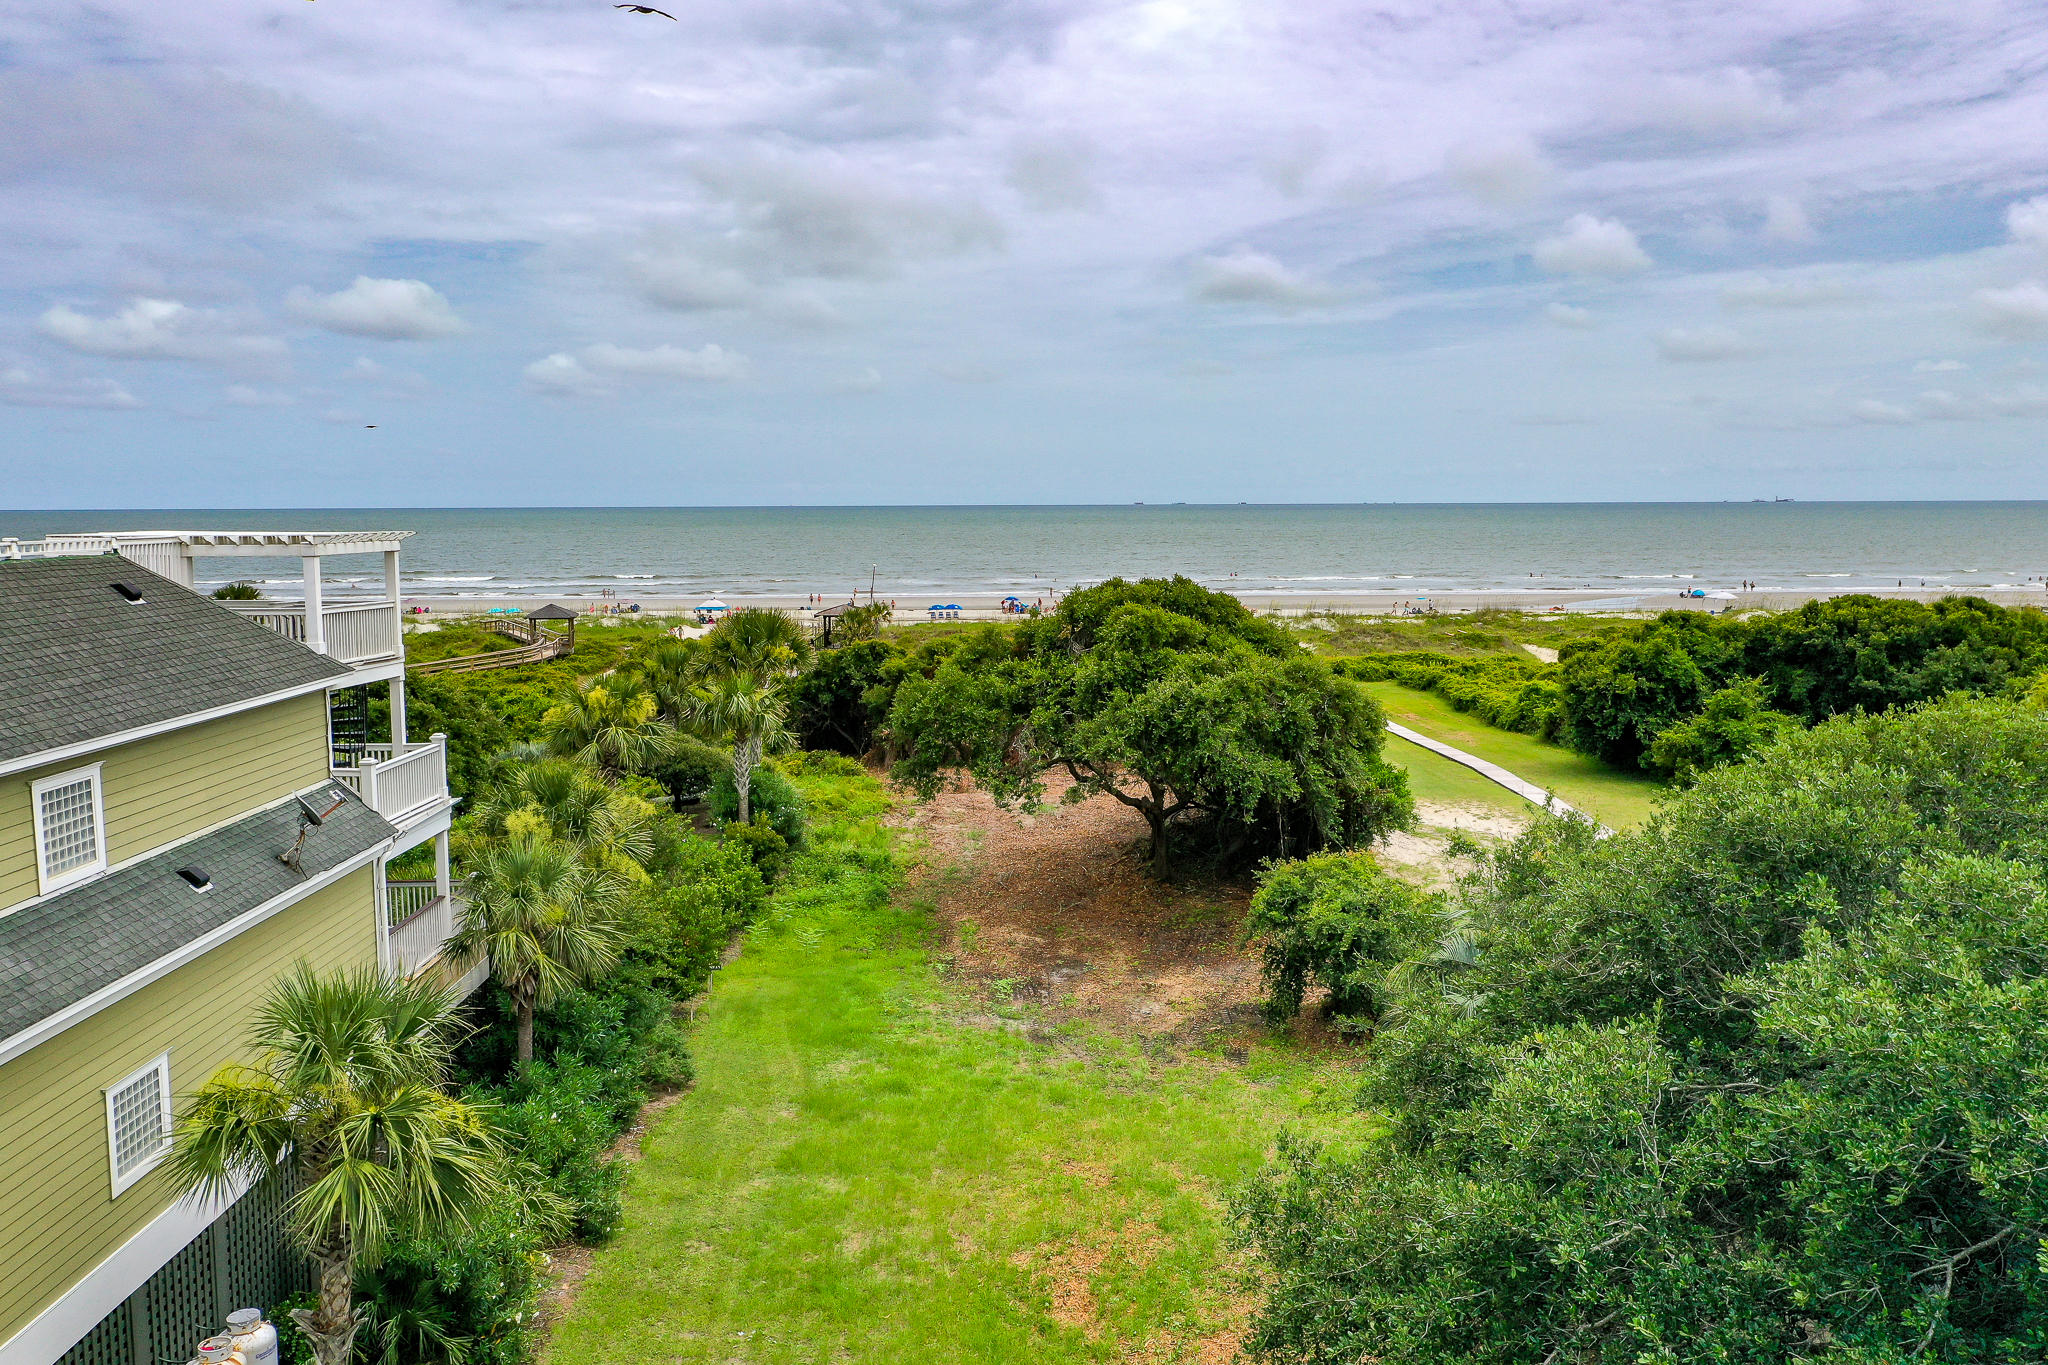 Isle of Palms Homes For Sale - 2914 Palm, Isle of Palms, SC - 2